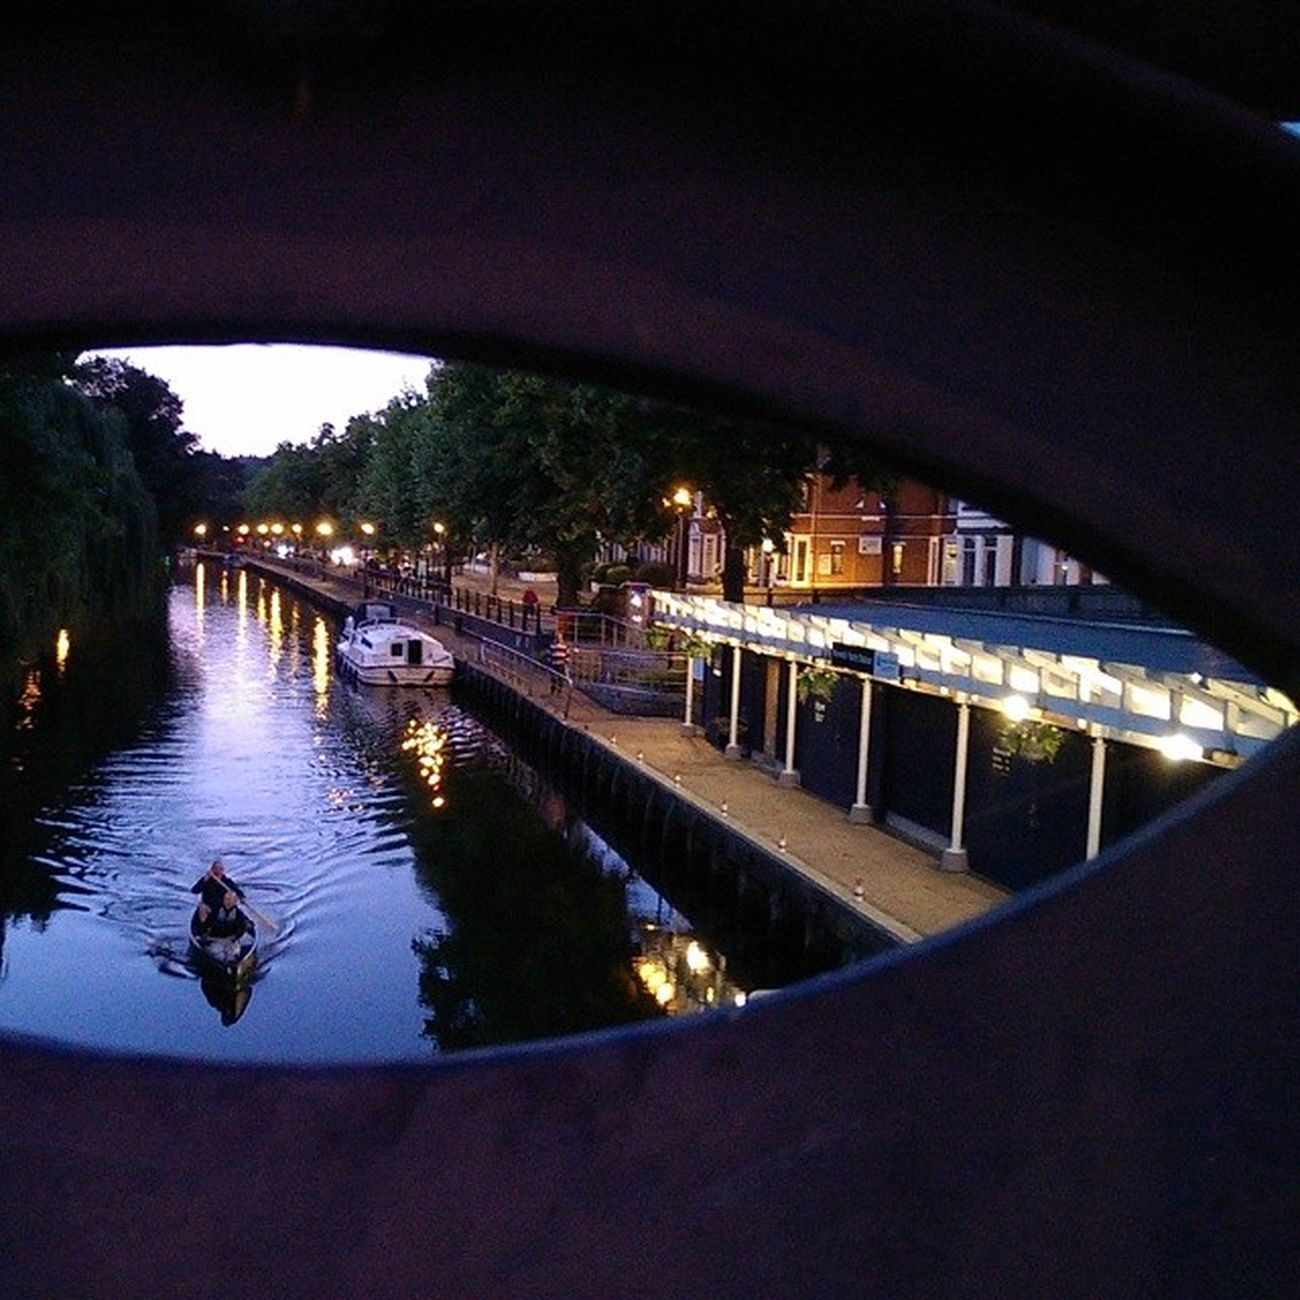 Eyeofnorwich Riverside Norwich Norwichtrainstation norwichriverside riverwensum reflection river boat rowingboat rowing riversidebridge photography nofilters